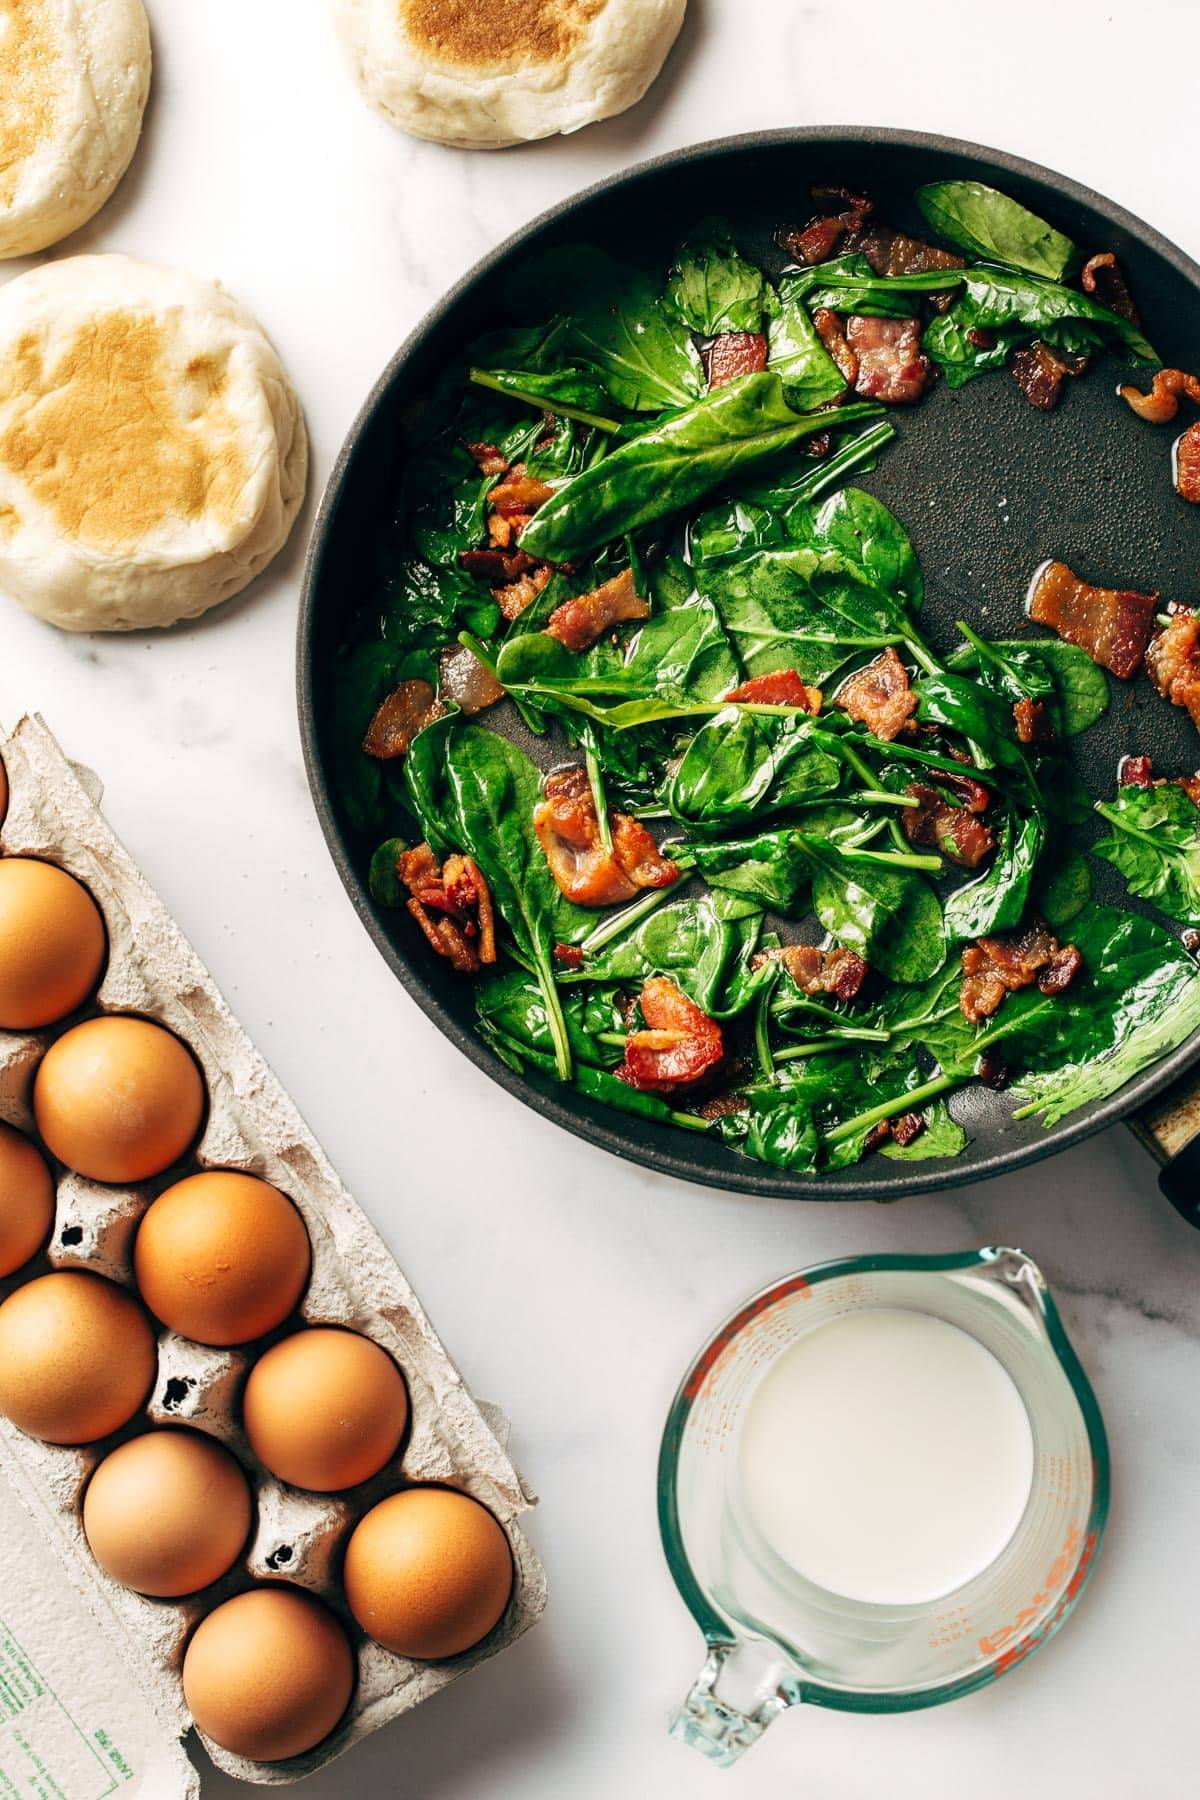 Spinach and bacon in pan with eggs.